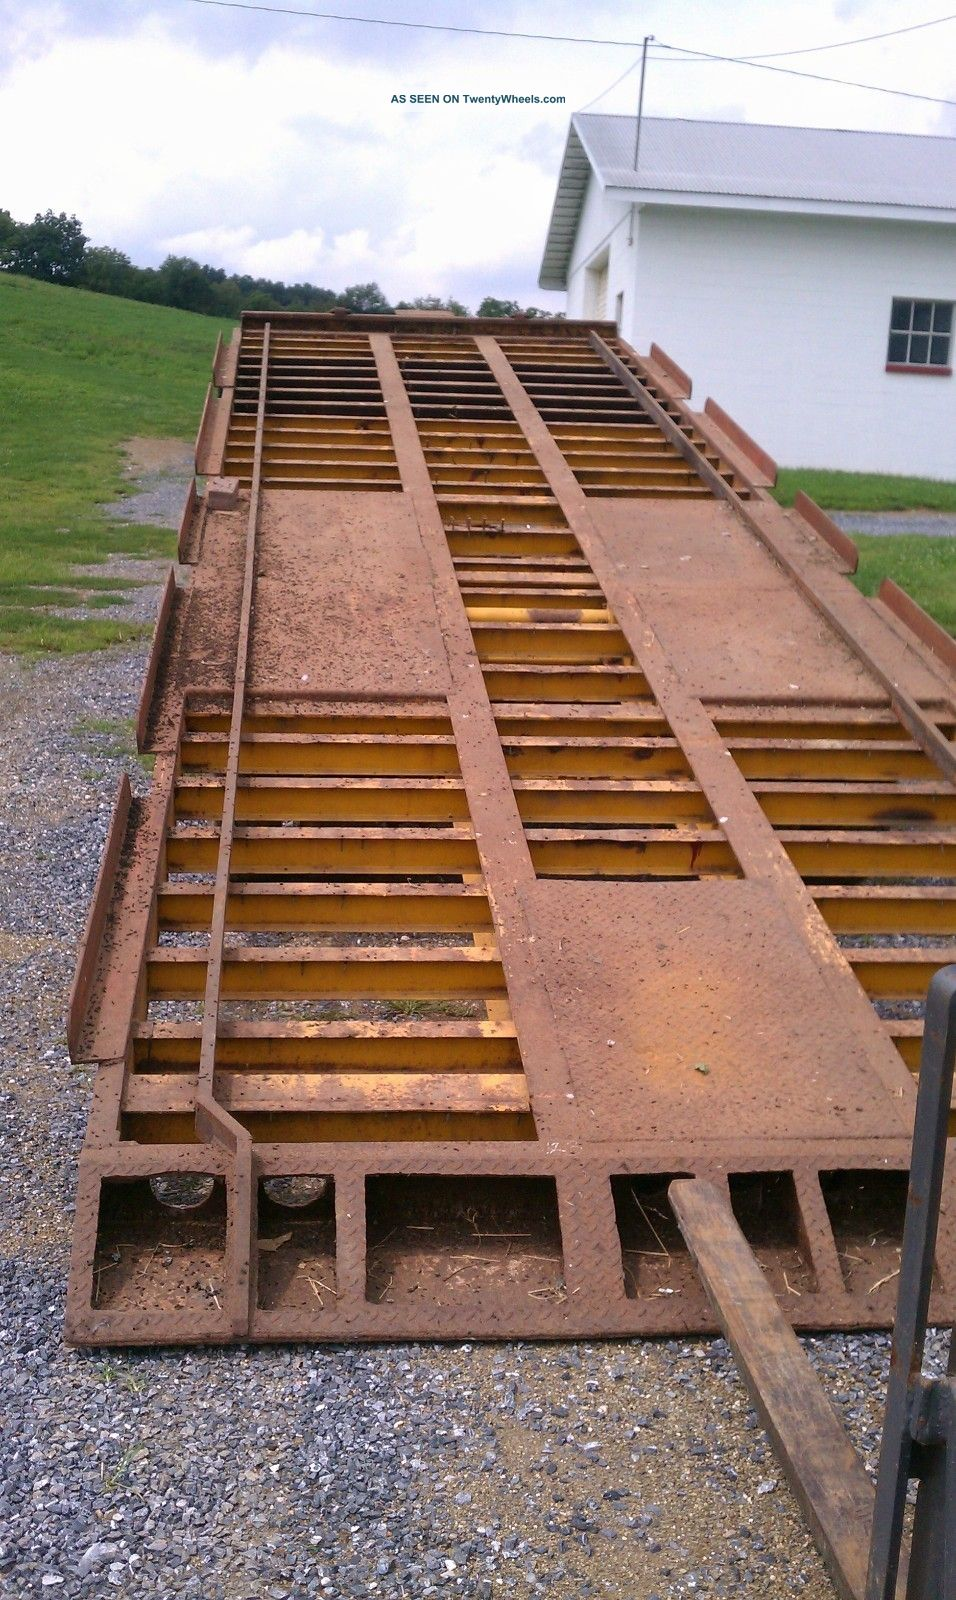 Trail King Construction Trailer Trailers photo